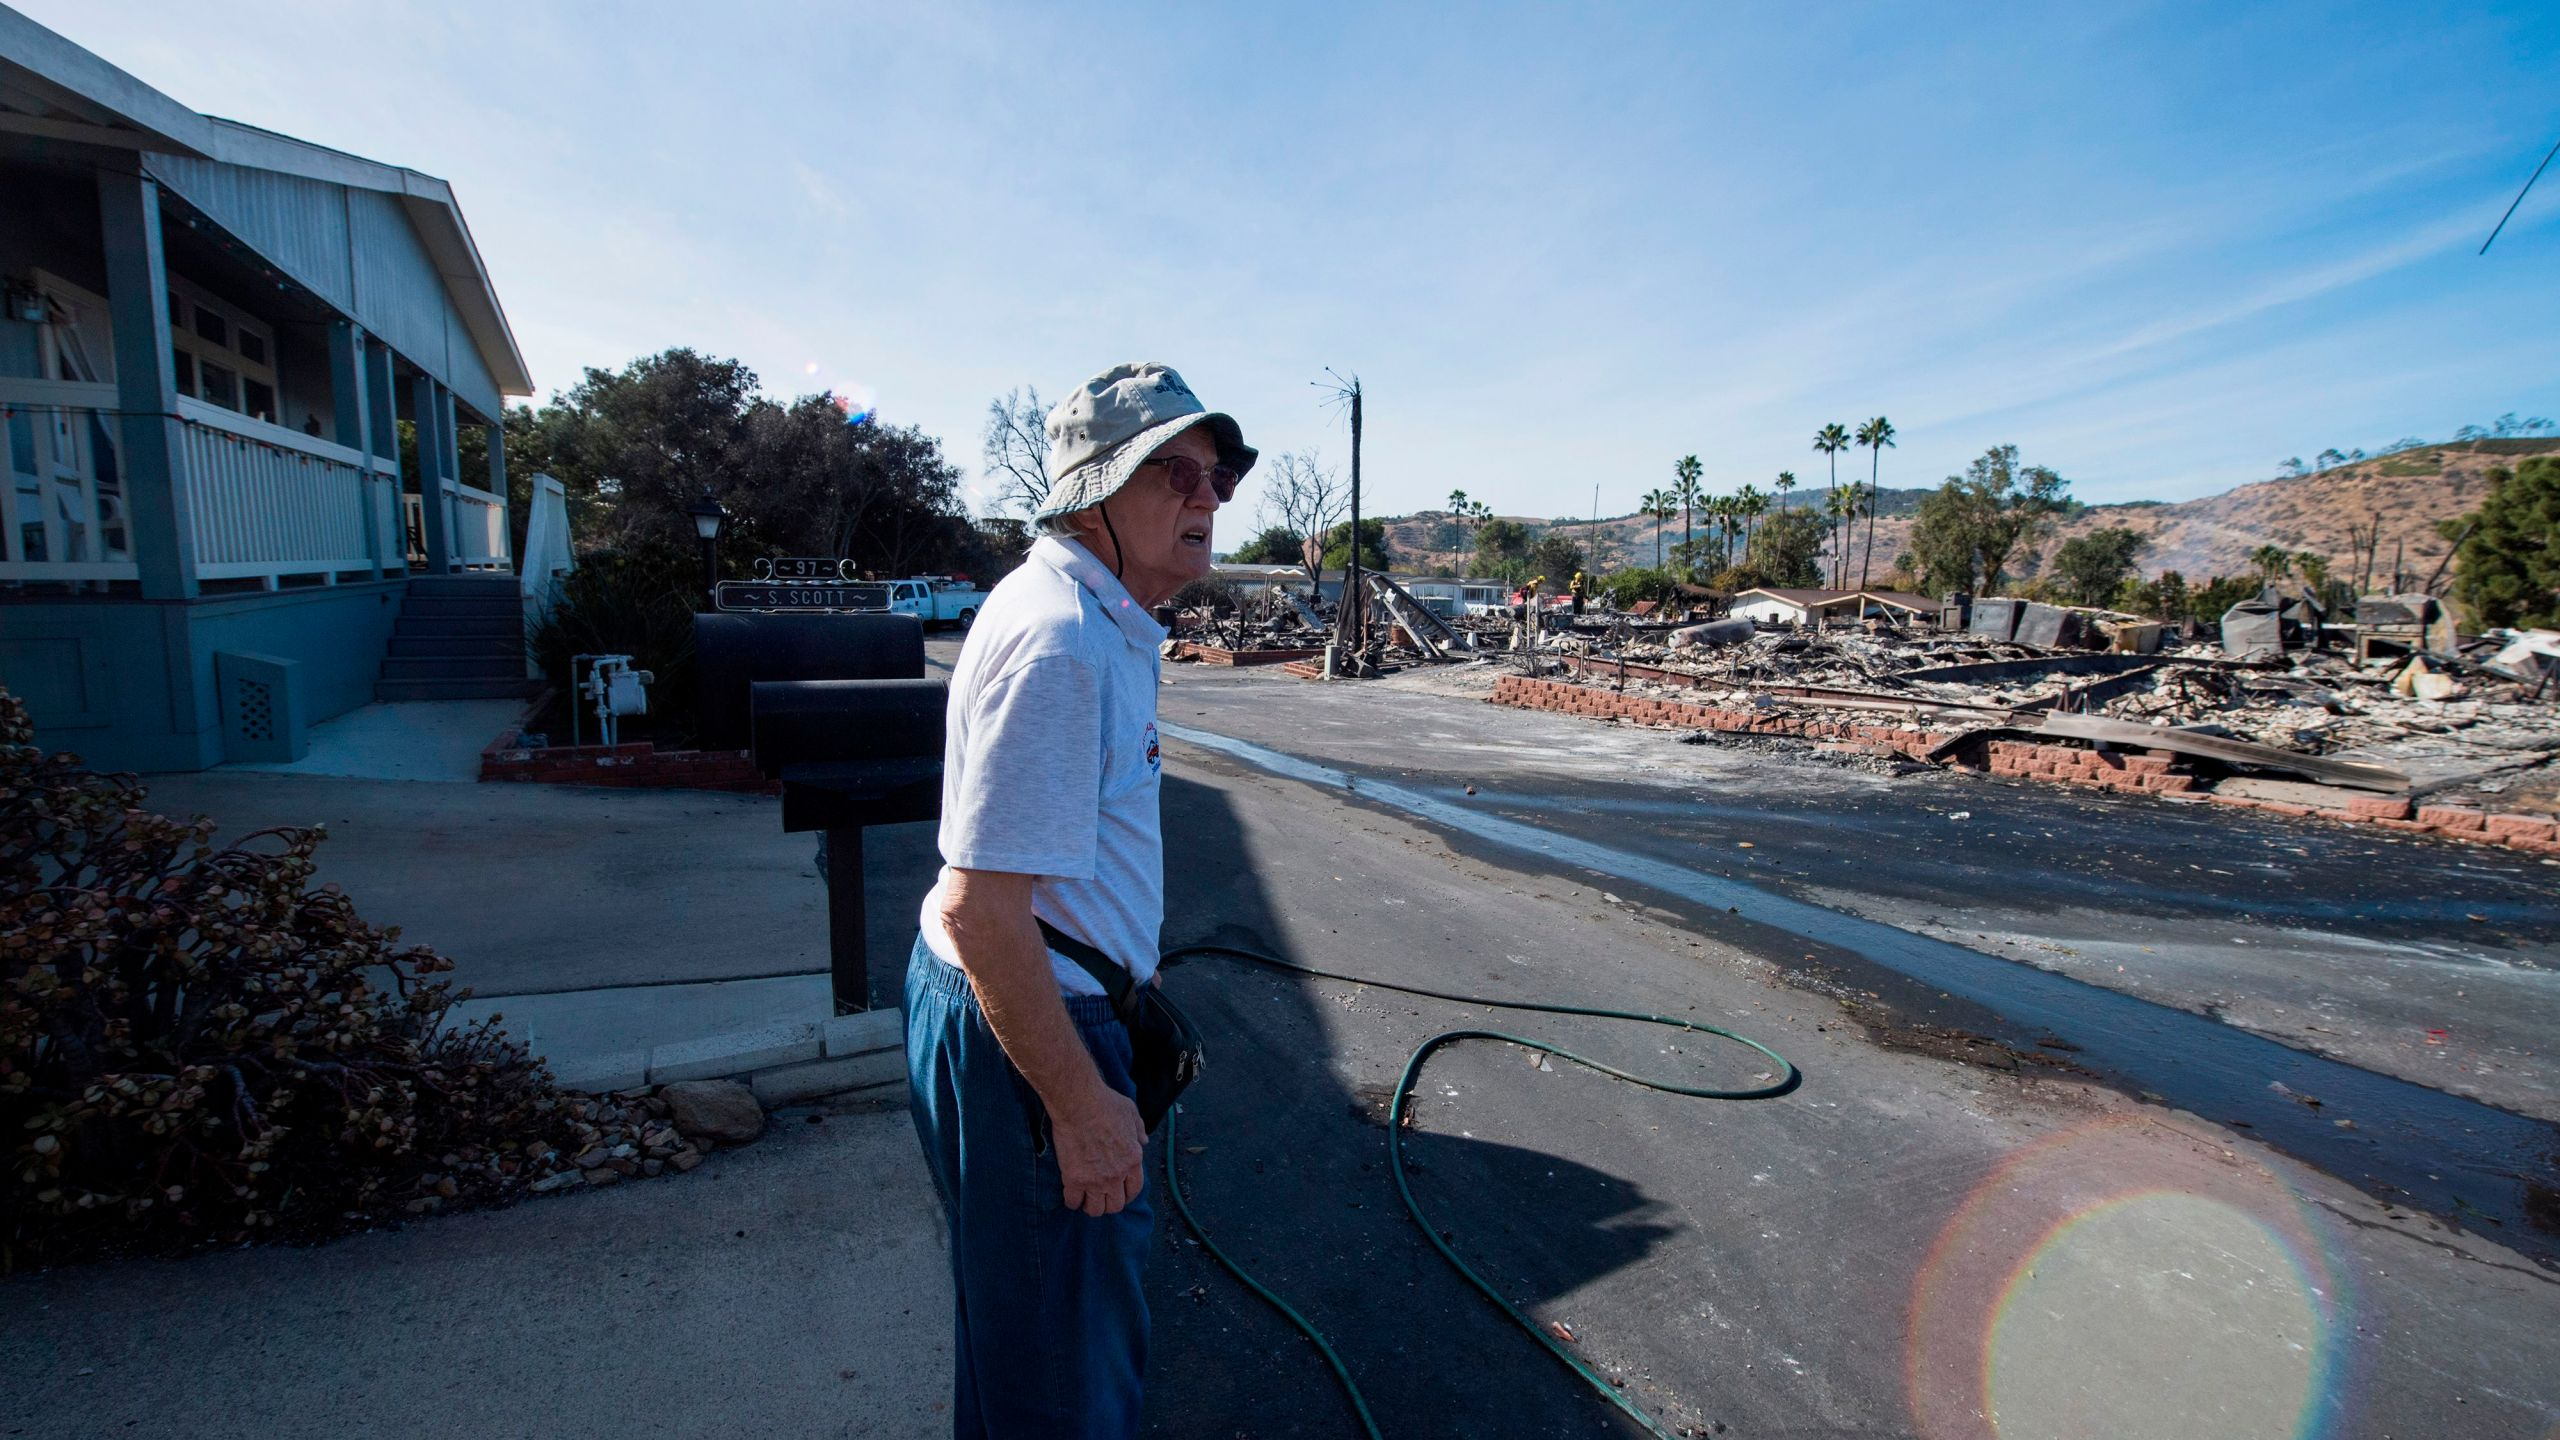 Local resident Pal Paricsy looks over the remains of his neighbors' homes destroyed by the Lilac Fire, Dec. 8, 2017, at a retirement community in Fallbrook, in San Diego County. (Credit: AFP PHOTO / Robyn Beck)